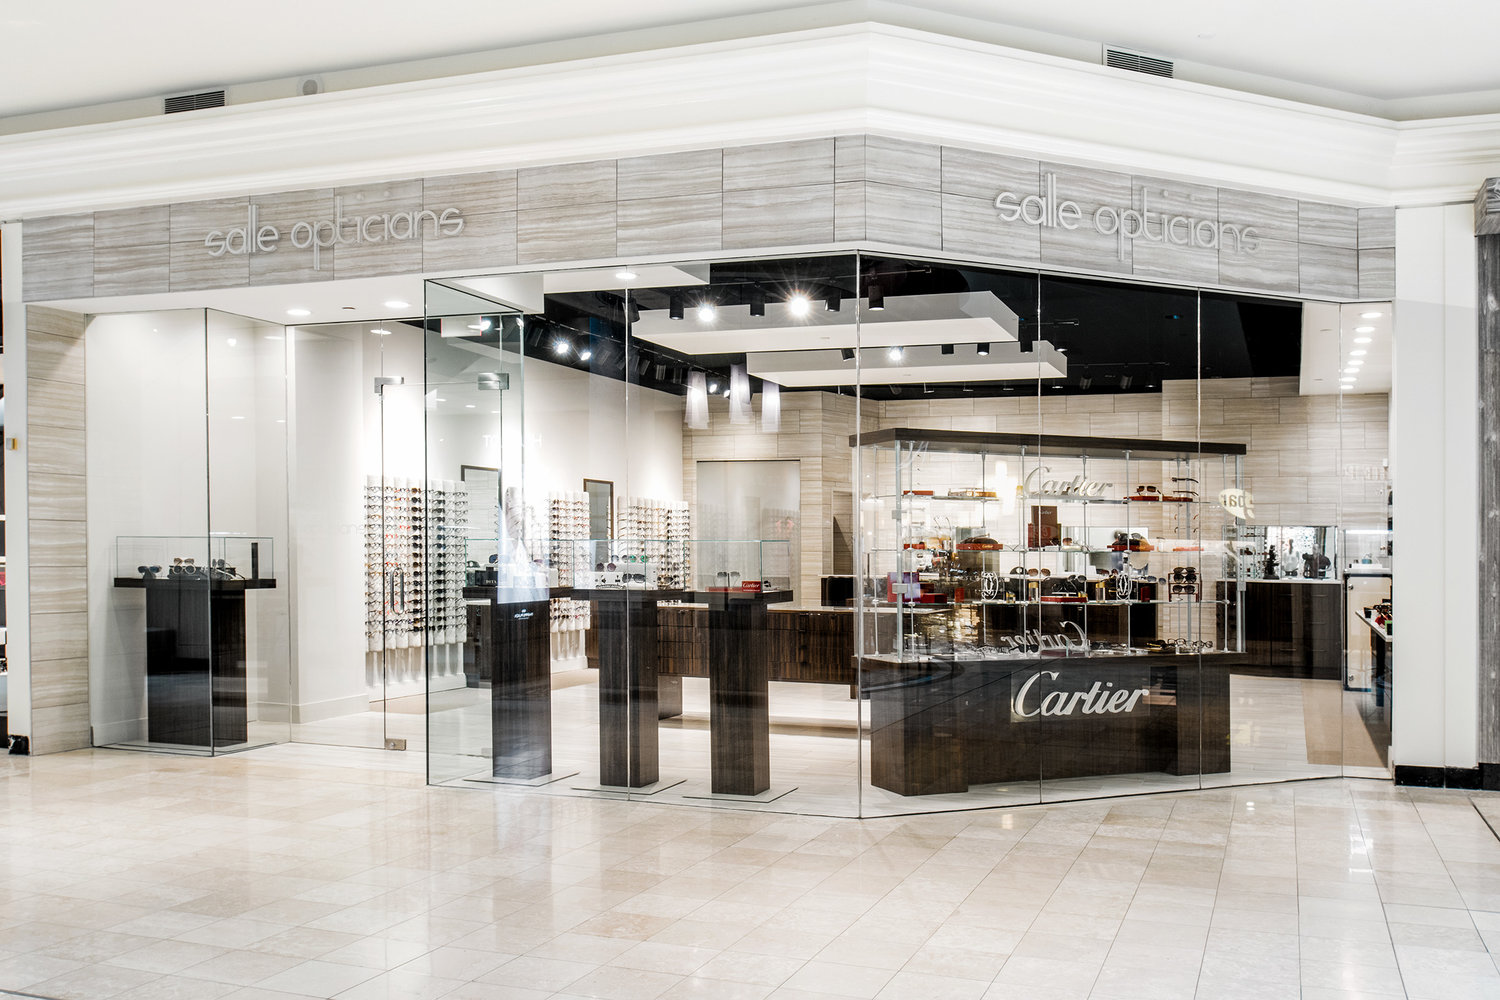 a61f0b24f364 Salle Opticians was founded in 1987 and continues to be the premier  independent eyewear destination in Atlanta.